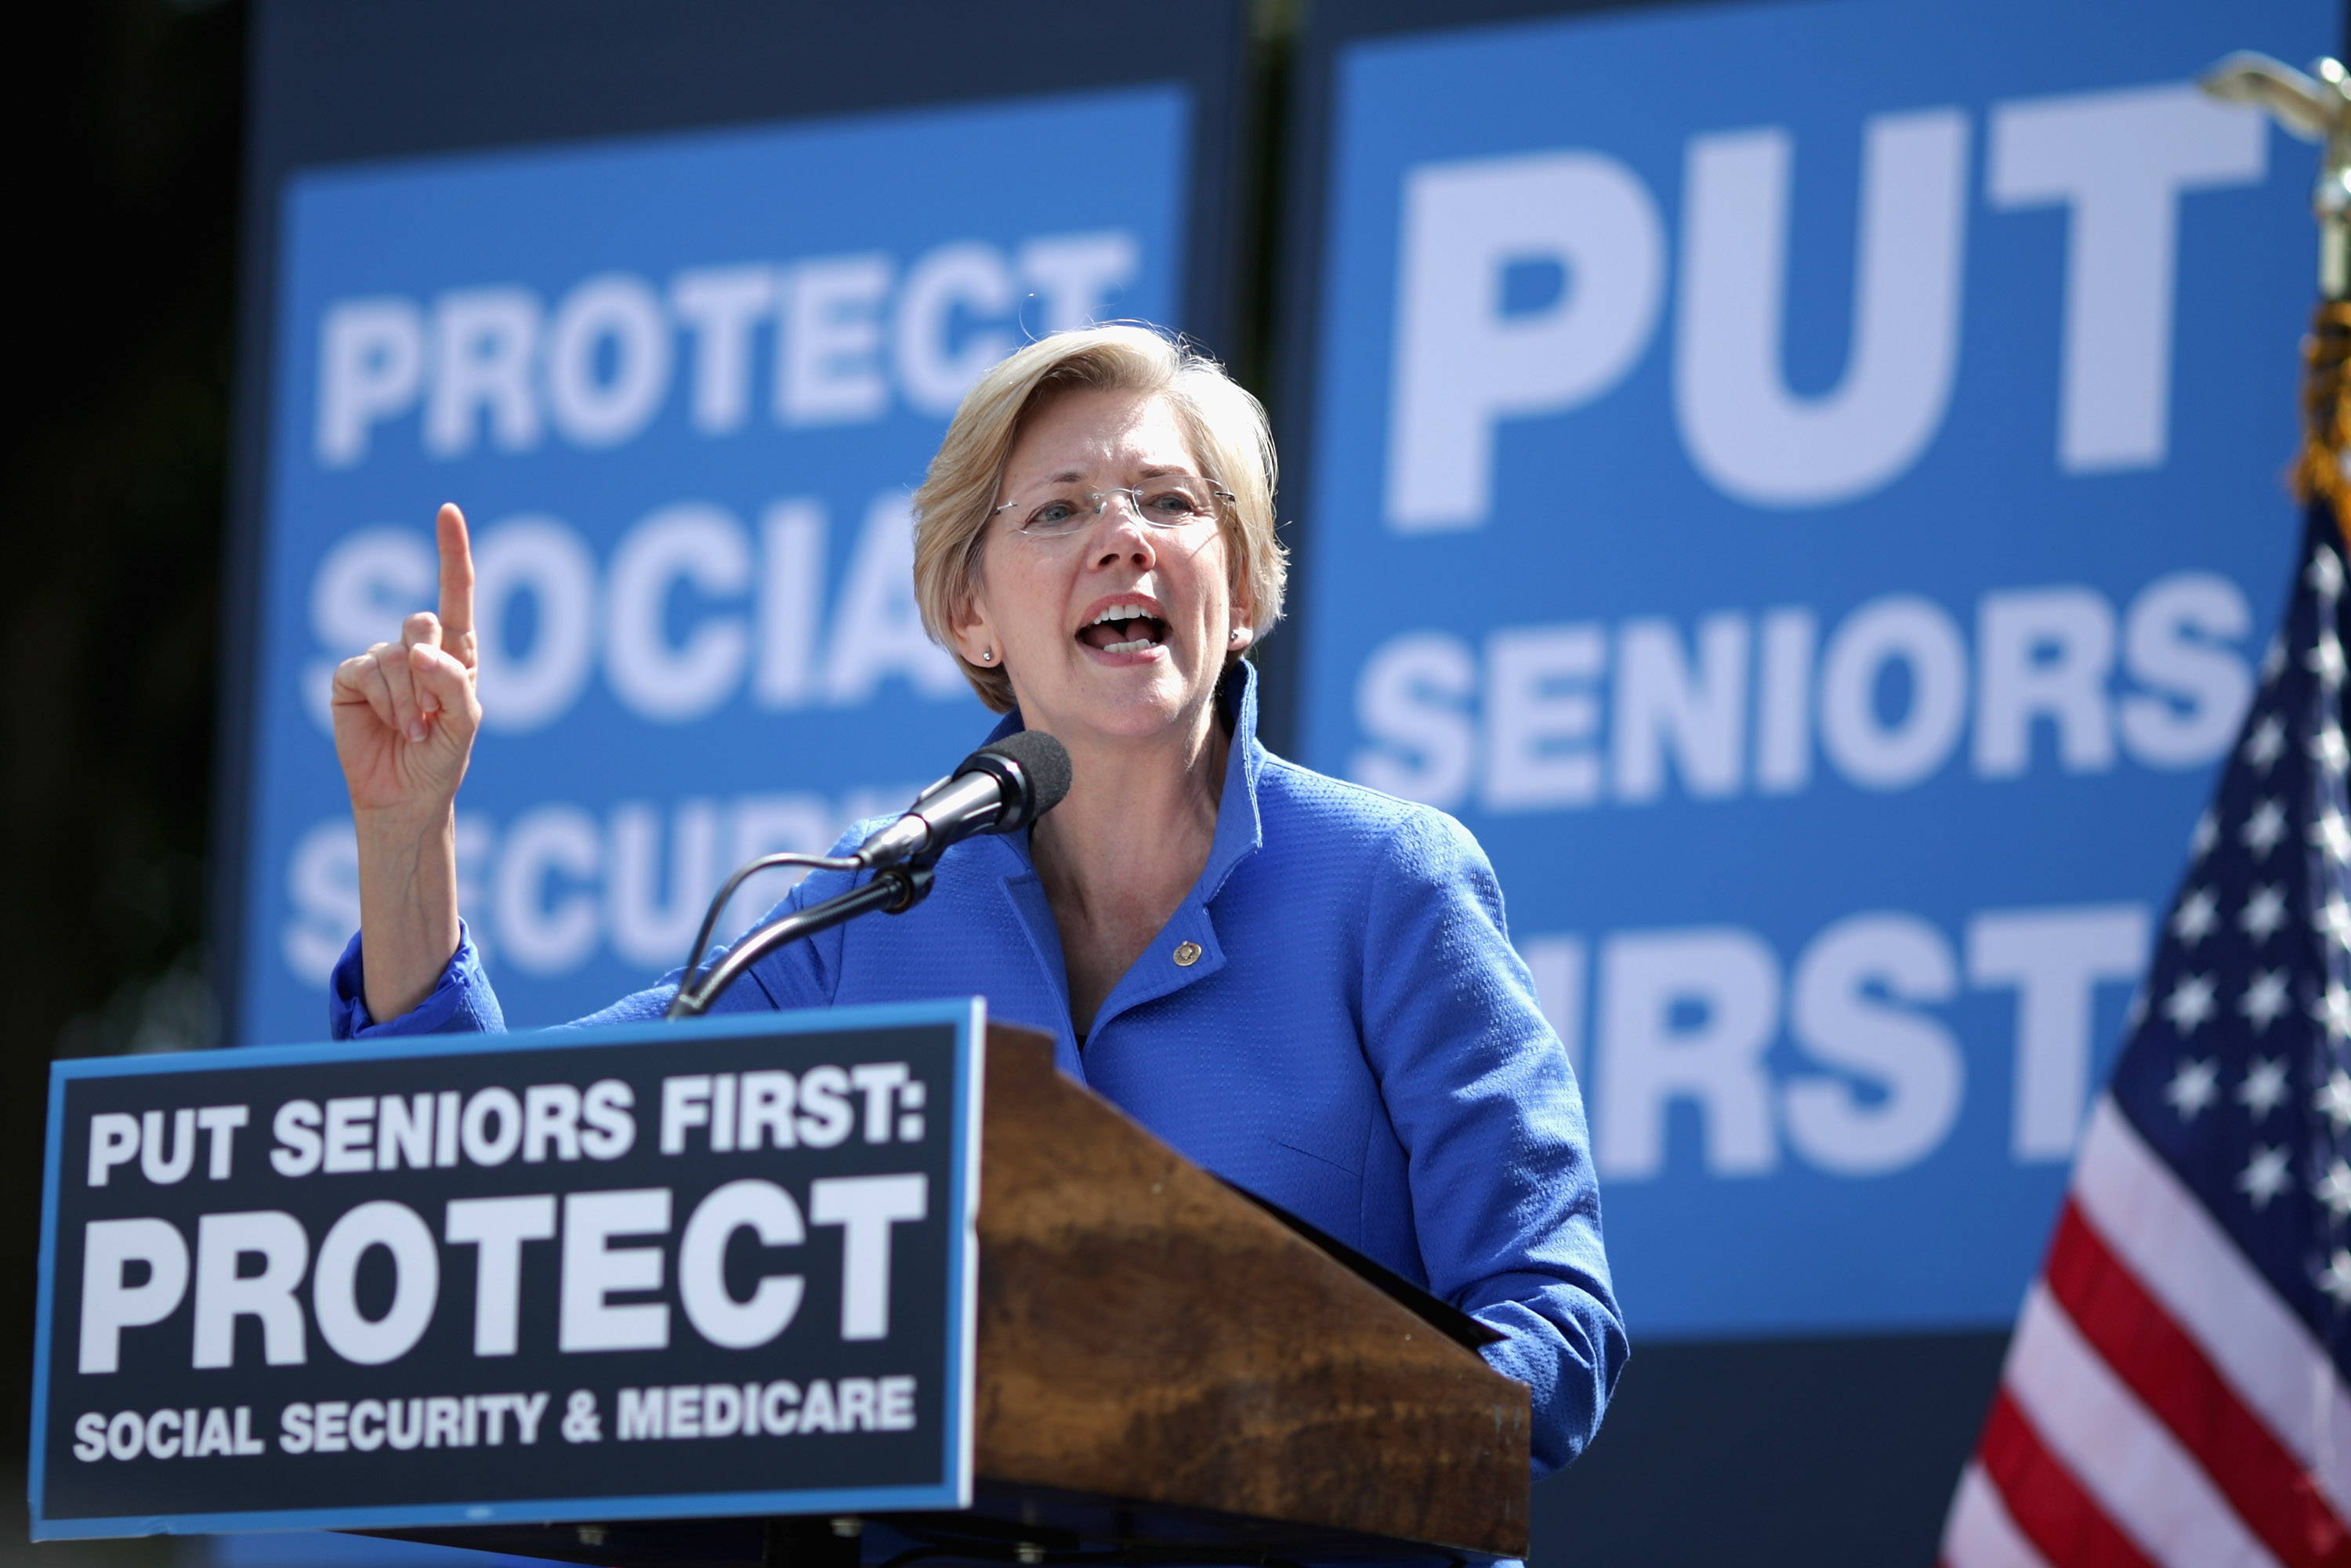 Sen. Elizabeth Warren addresses a rally in support of Social Security and Medicare on Capitol Hill September 18, 2014 in Washington, DC. (Chip Somodevilla/Getty Images)